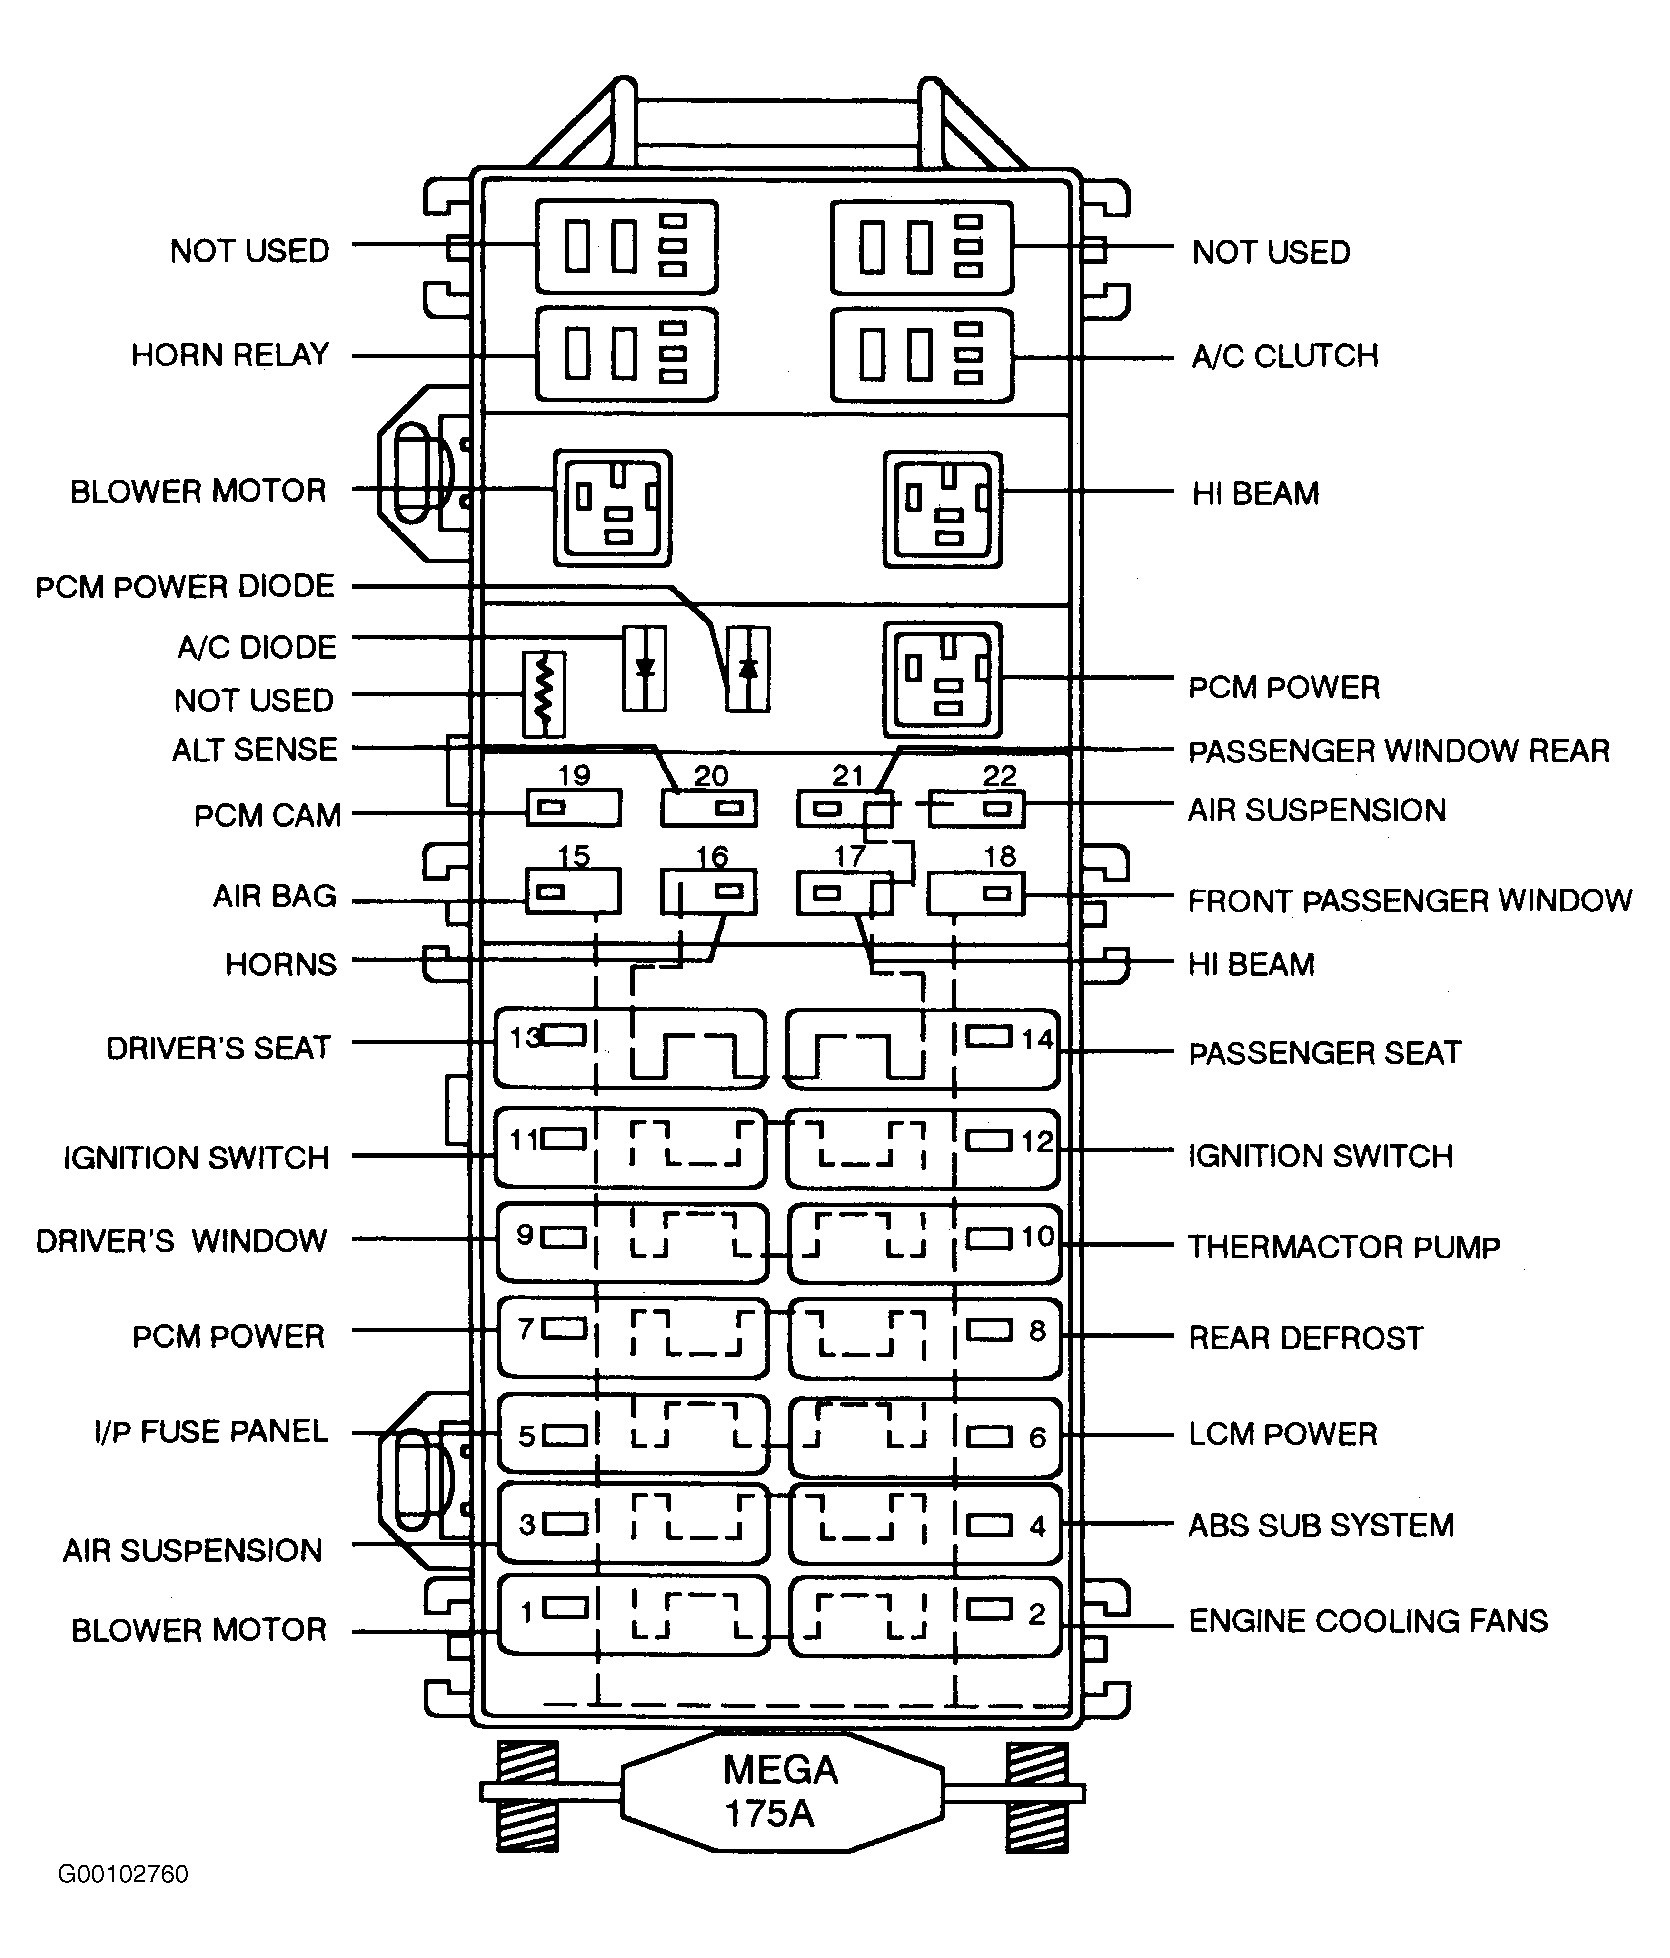 small resolution of car fuse box layout wiring diagram page02 lincoln town car manual for fuse box schema diagram